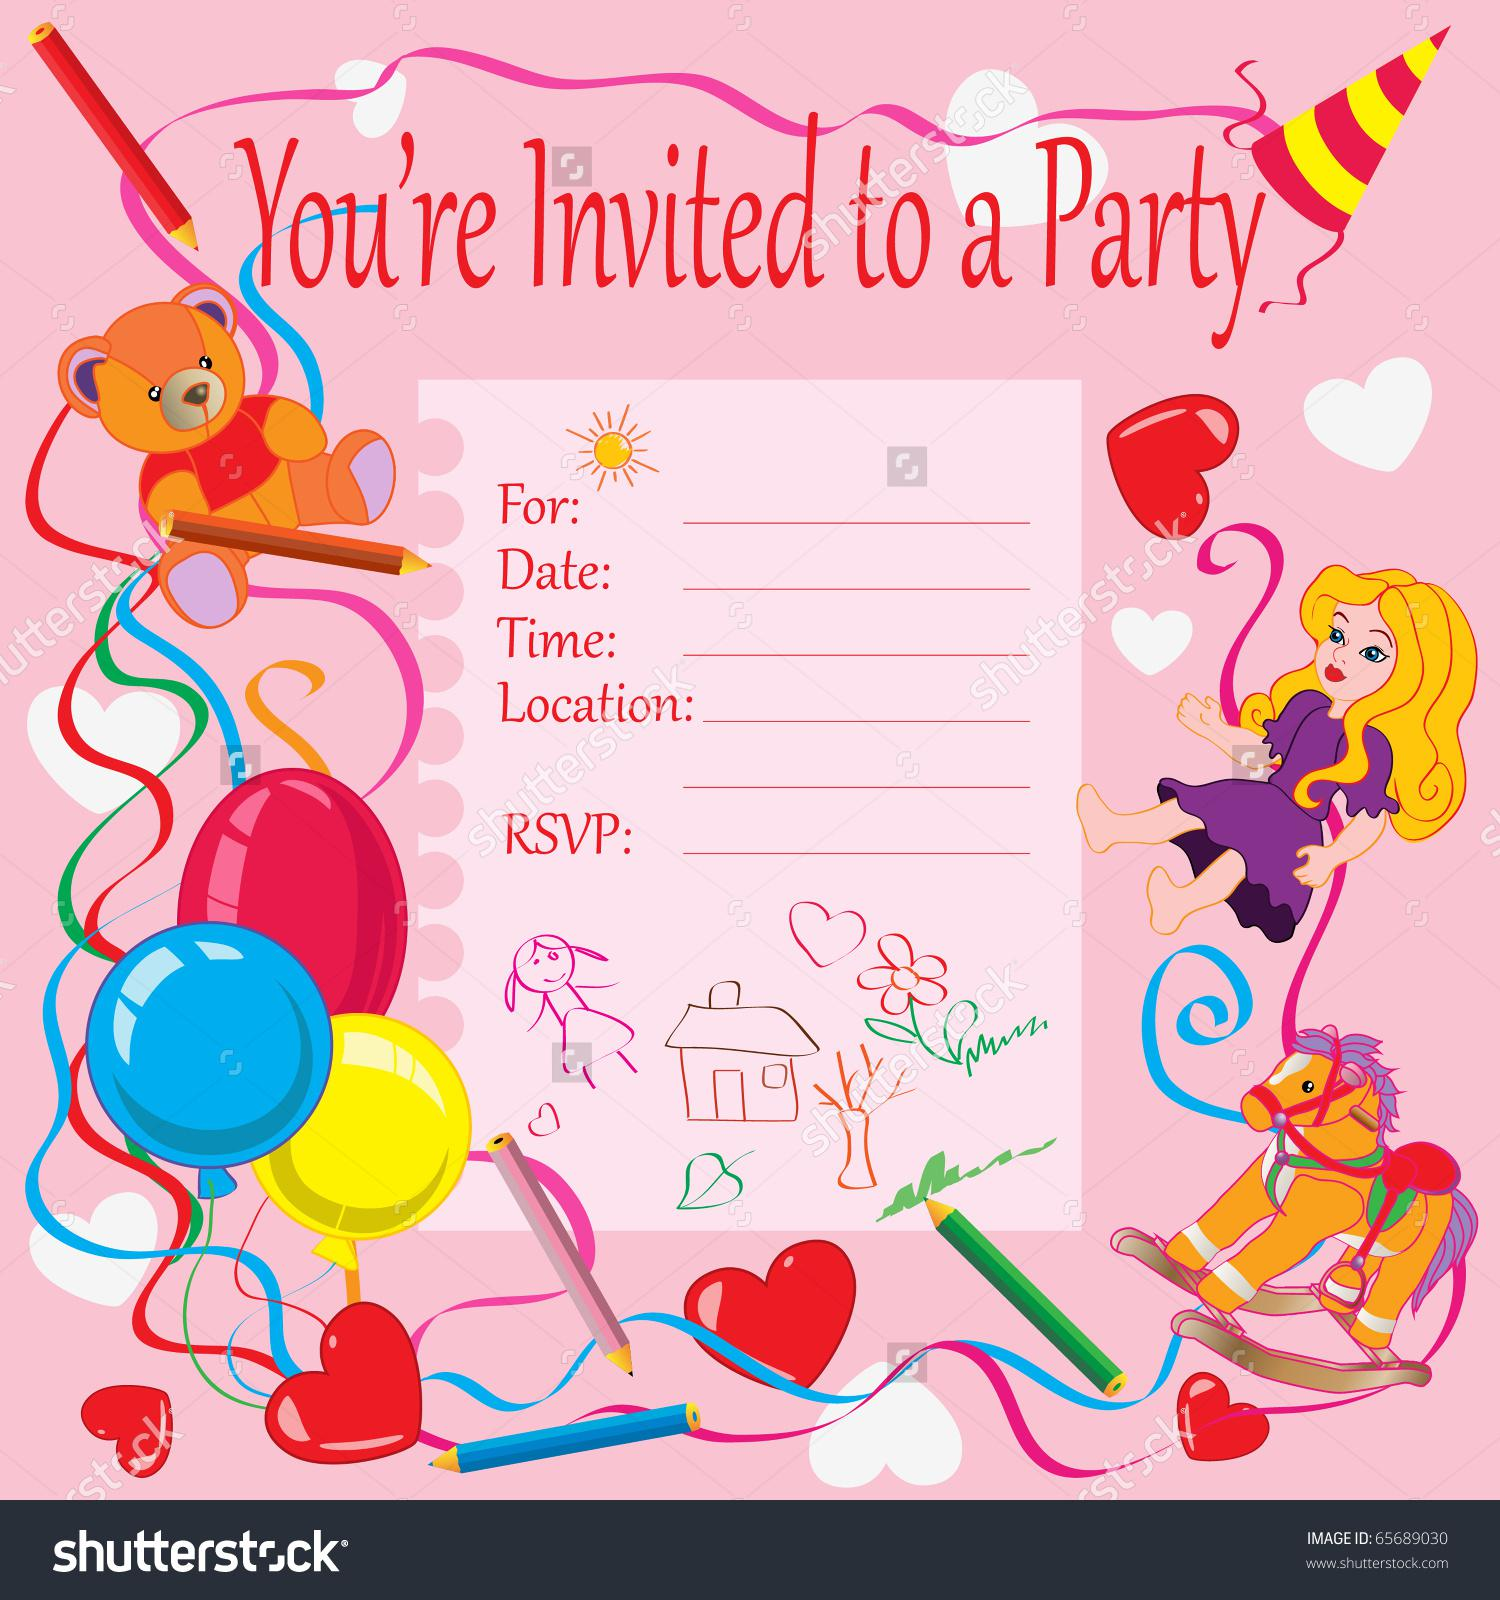 kids birthday card invitations - gagnatashort.co